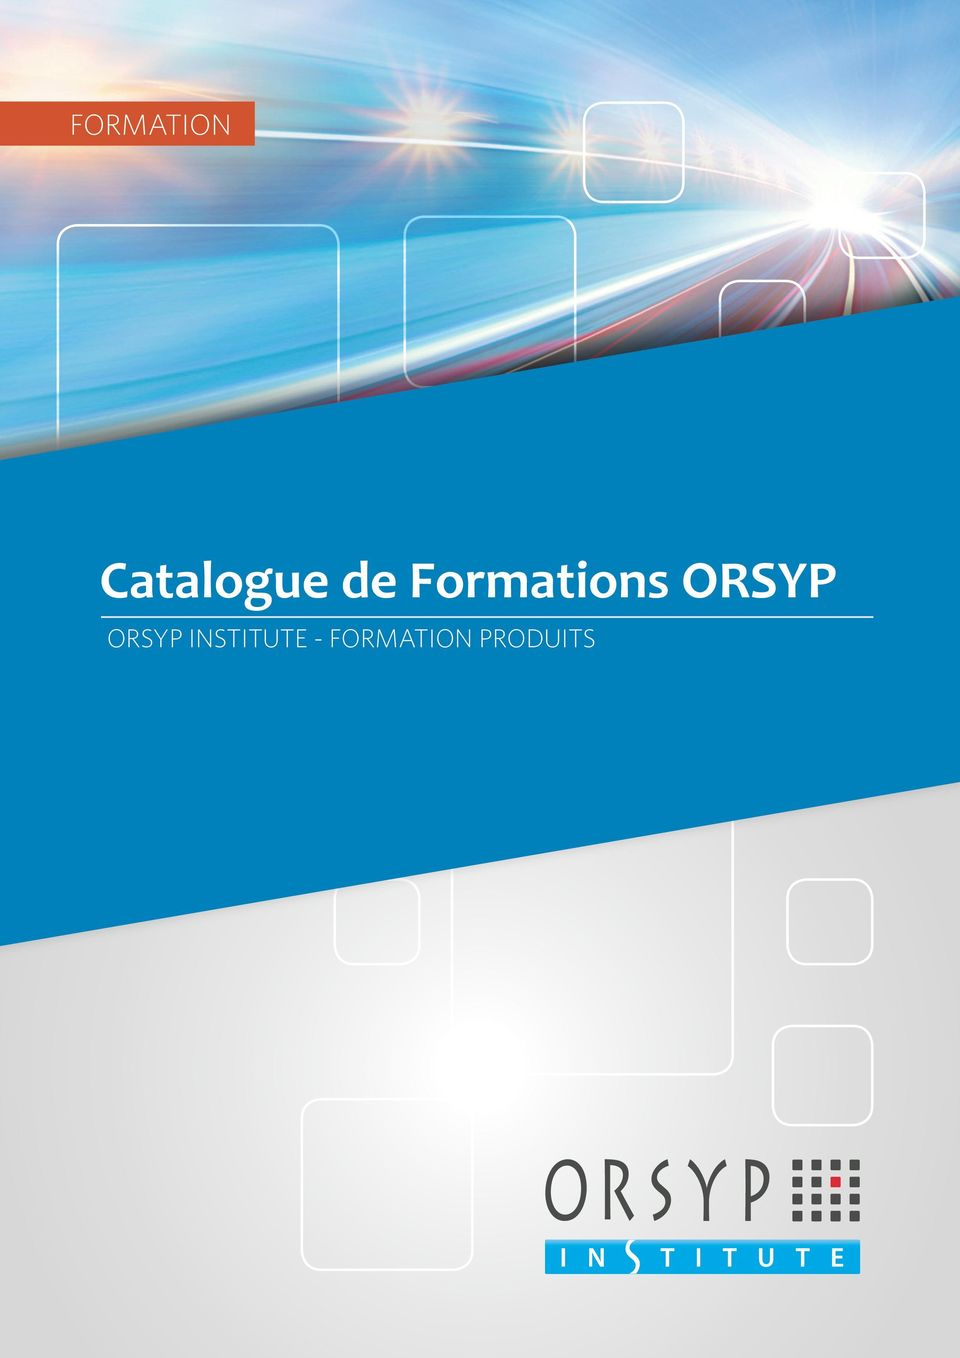 Formations ORSYP